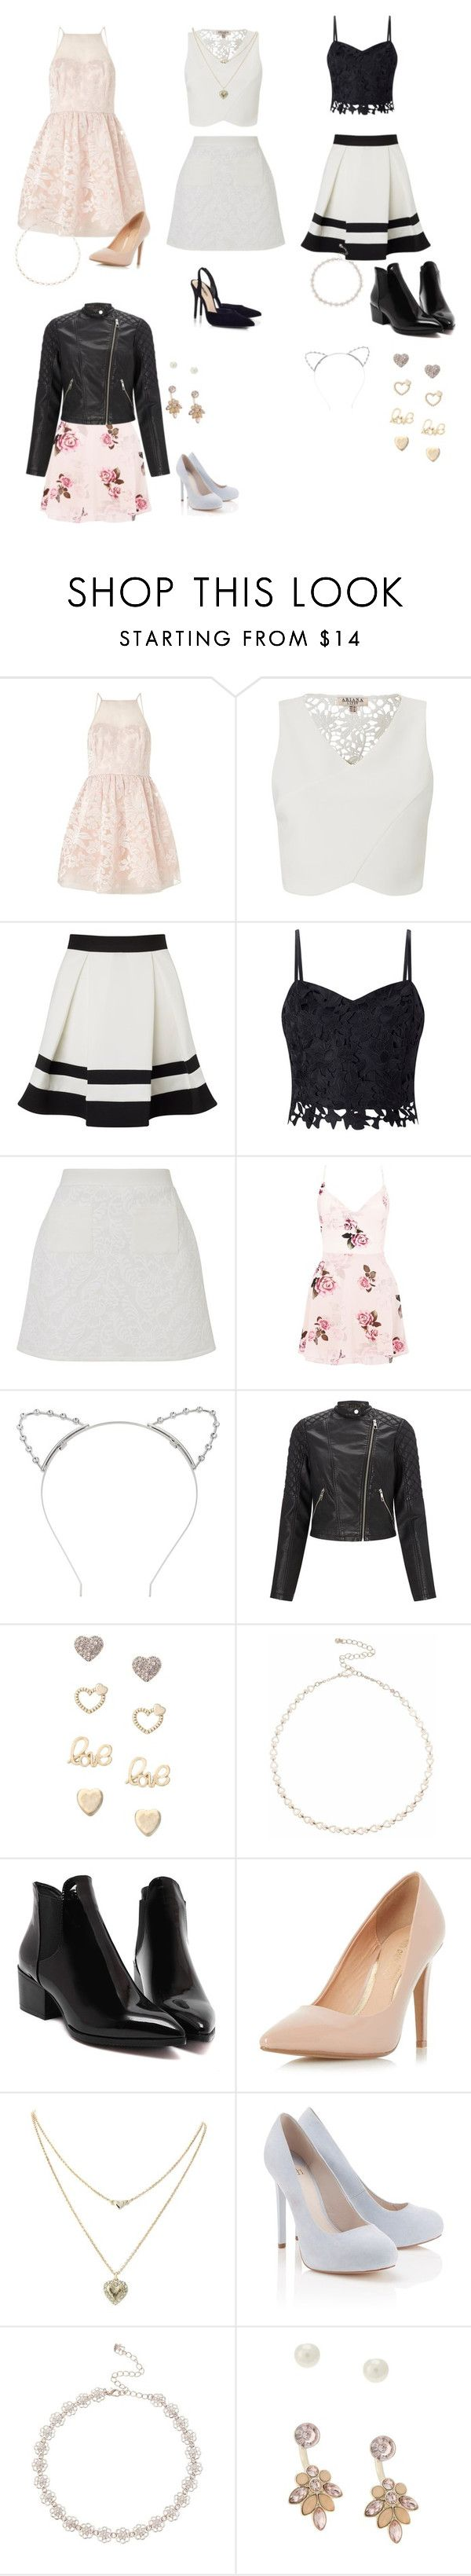 """""""Adriana Grande collection (1)"""" by vivi-603 on Polyvore featuring Lipsy and Dorothy Perkins"""